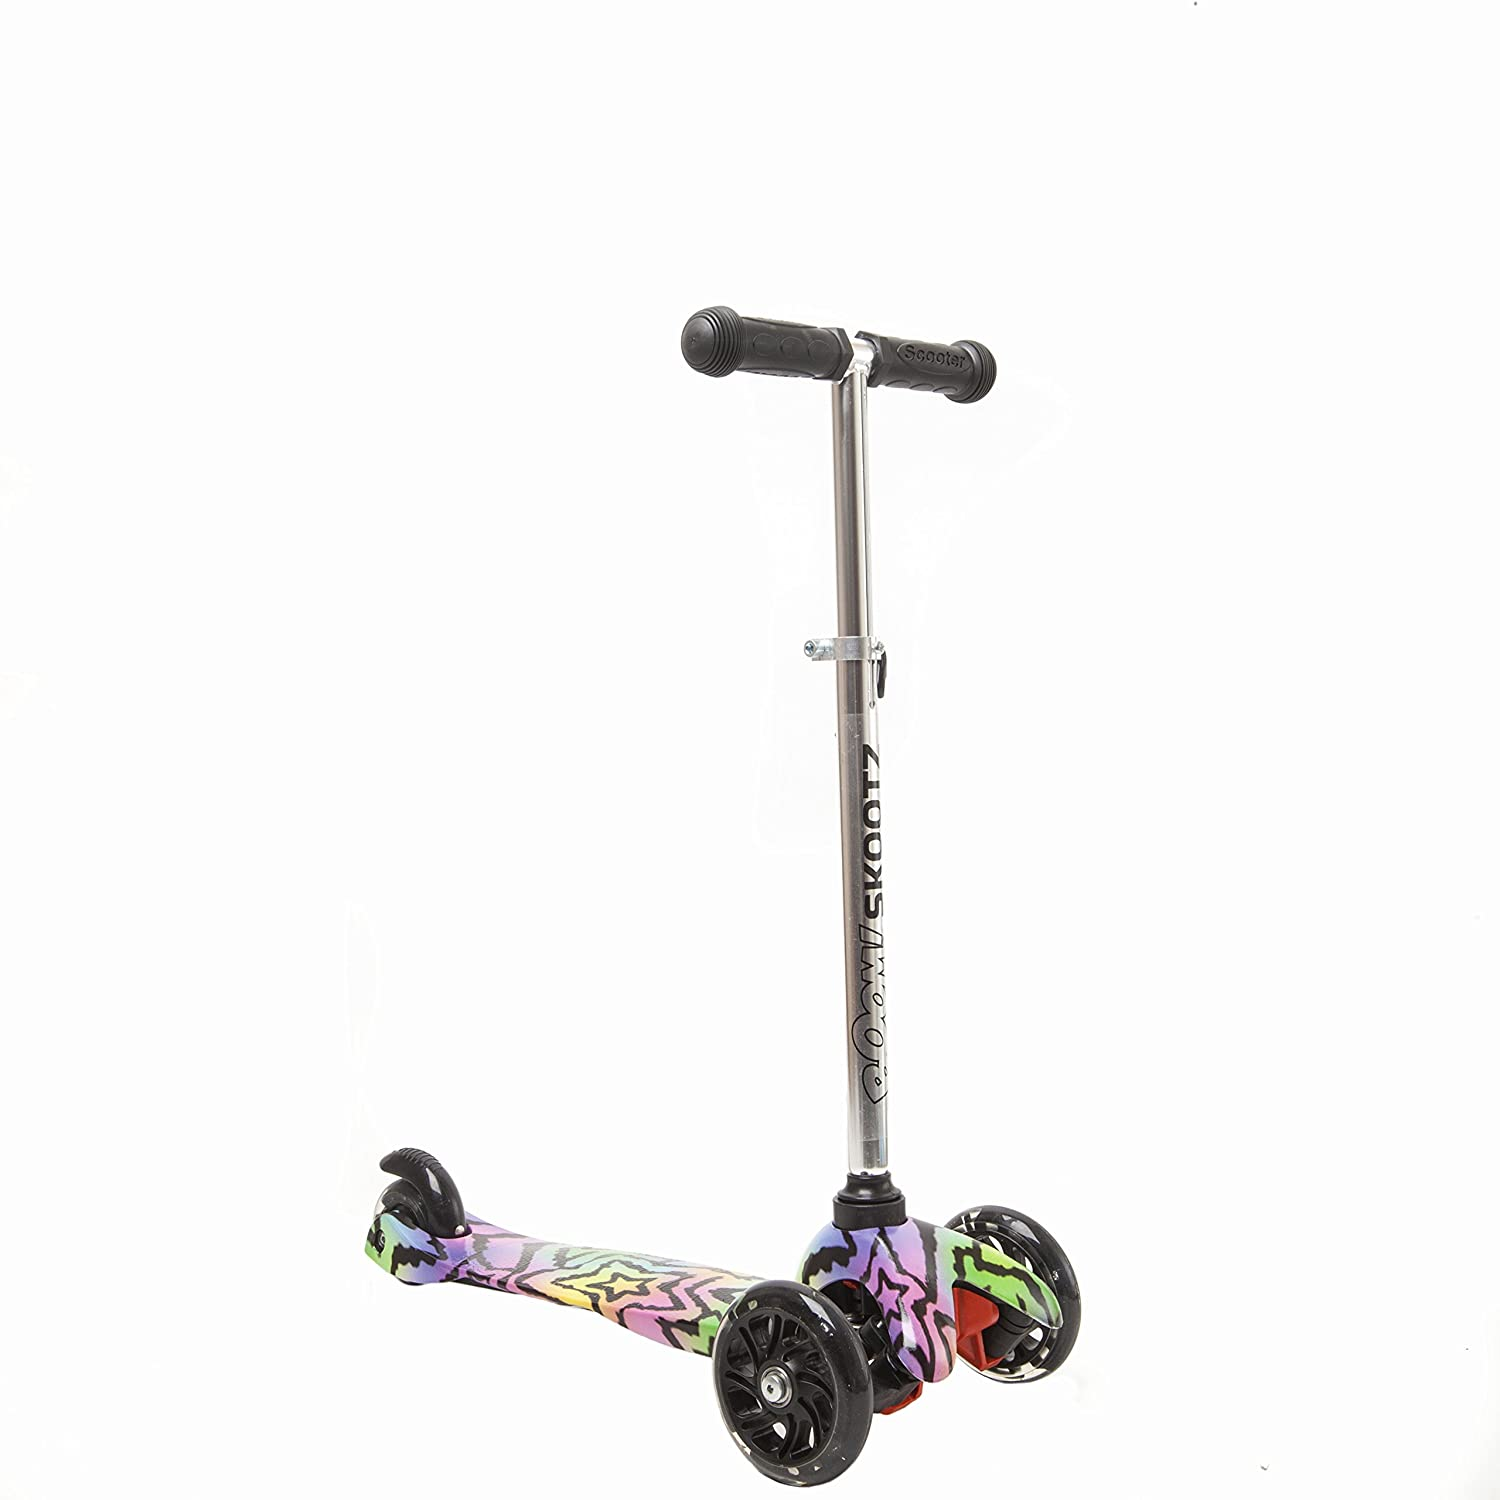 Deluxe 3 Wheel MINI Scooter - Perfect for 2-5 Year Olds. New Design with Adjustable Handlebars and Light Up Wheels.